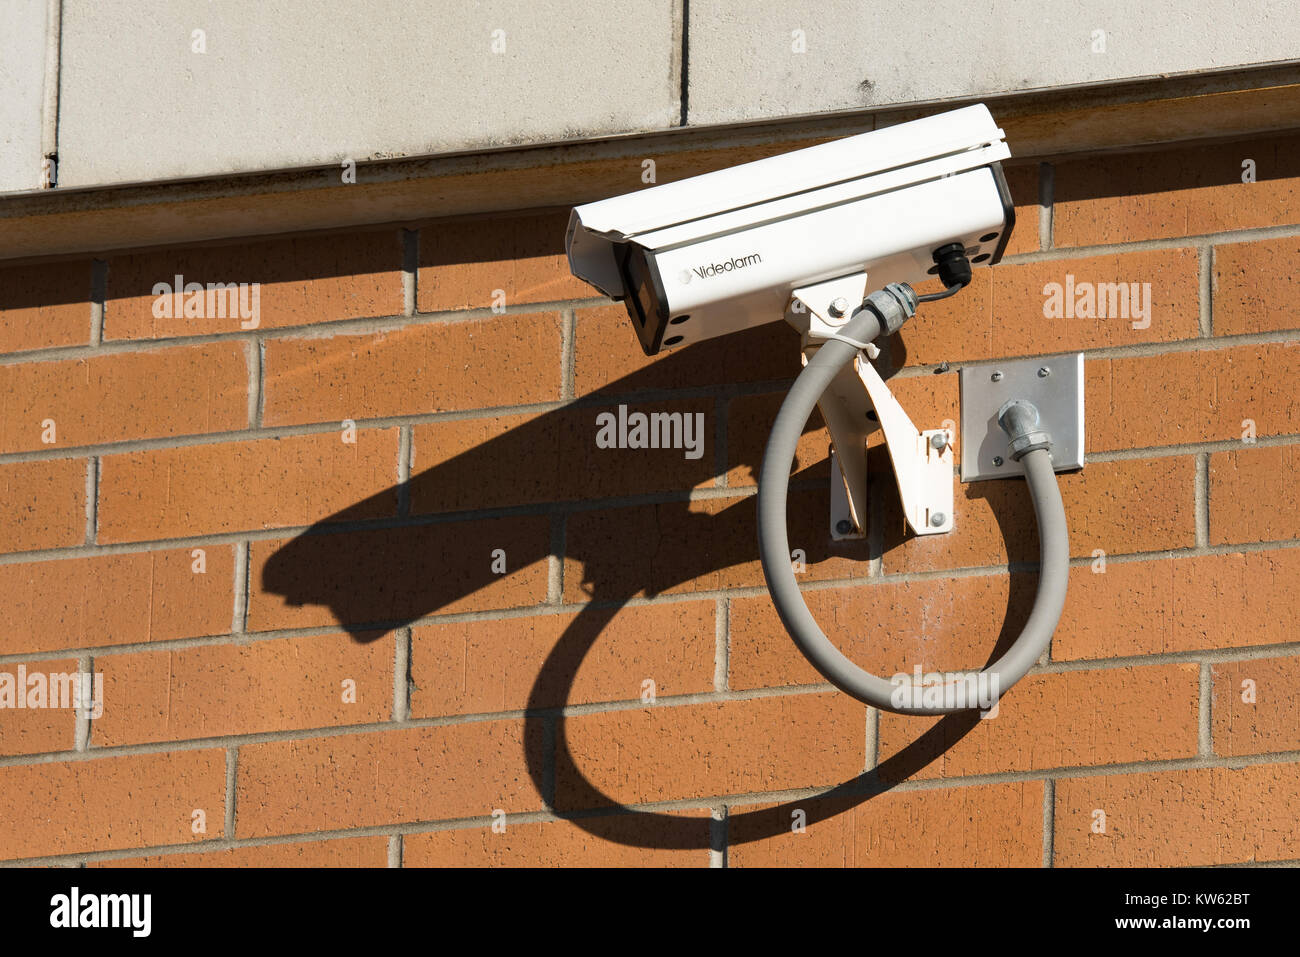 A surveillance camera on a brick wall of a store in Gloversville, NY USA Stock Photo